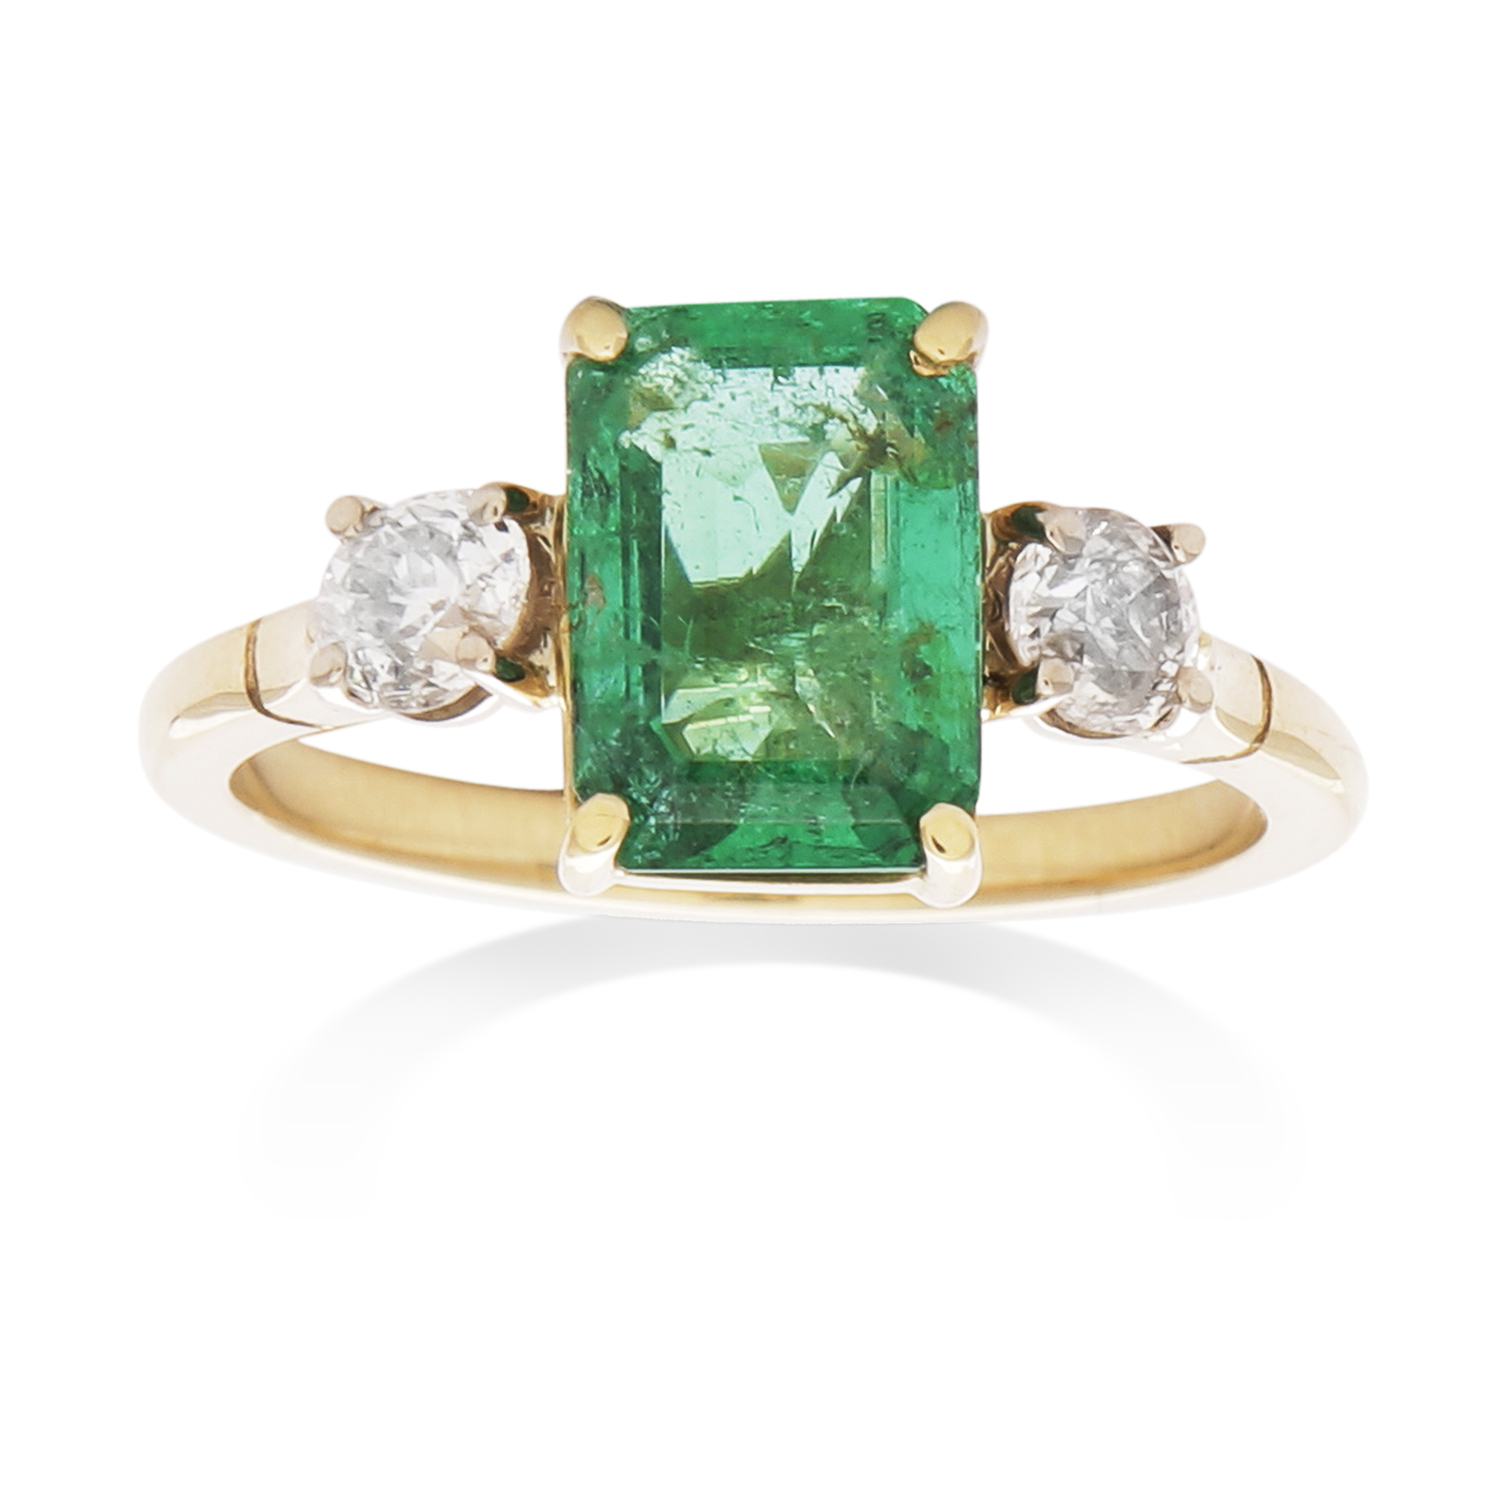 Los 8 - AN EMERALD AND DIAMOND DRESS RING in high carat yellow gold, set with a central emerald of 1.82